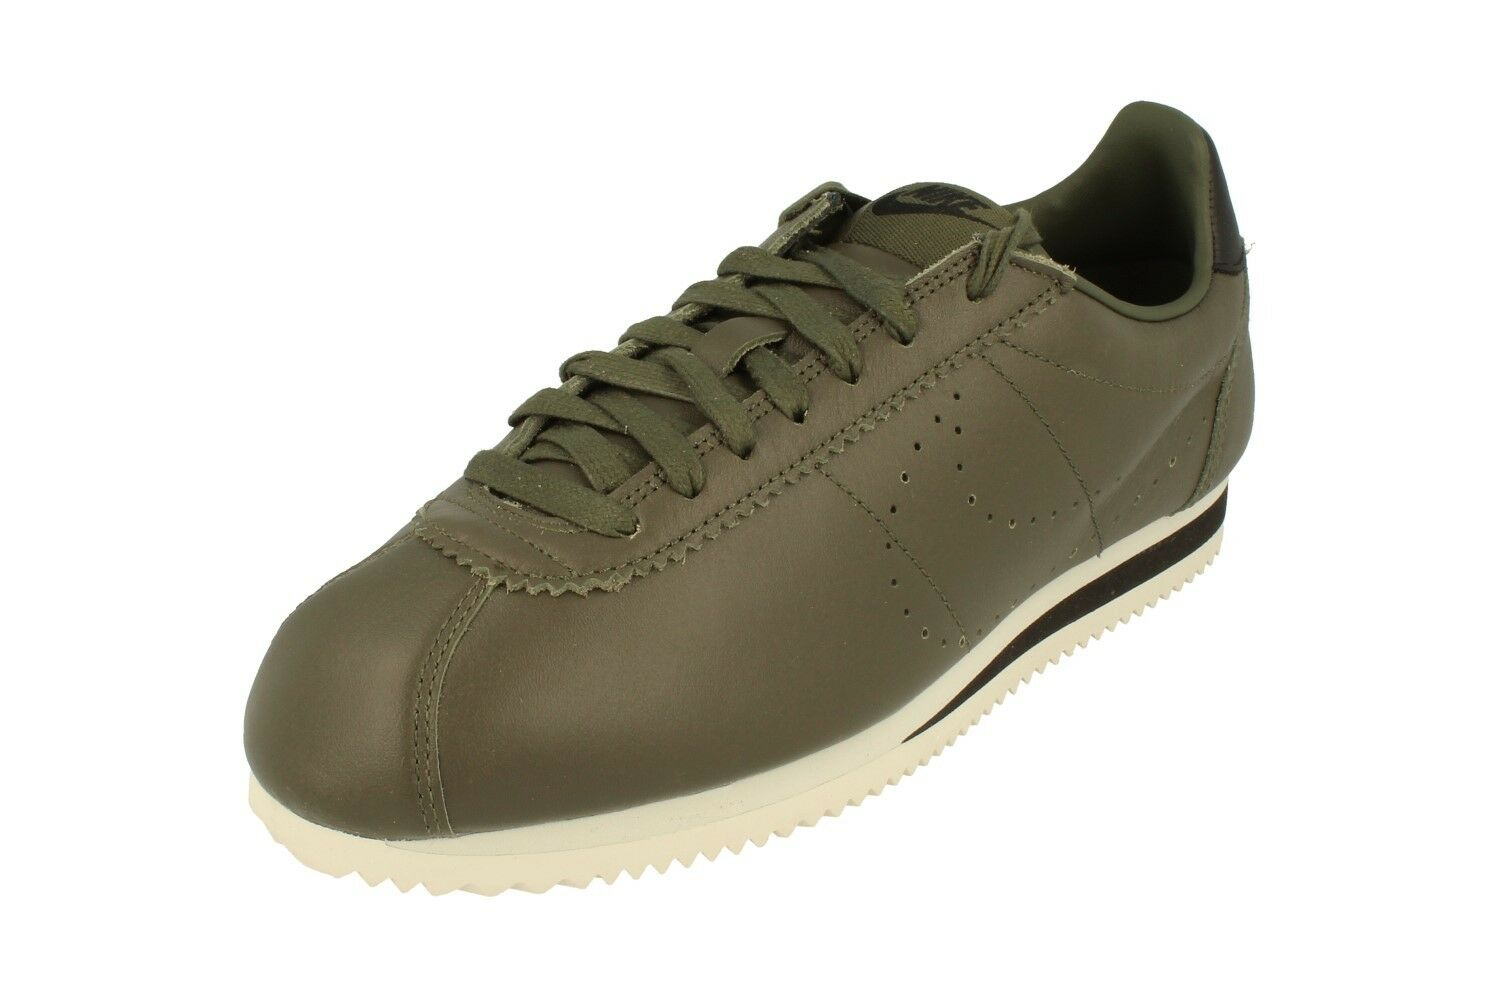 Nike Classic Cortez Leather Prem Mens Trainers 861677 Sneakers Shoes 300 Cheap and beautiful fashion